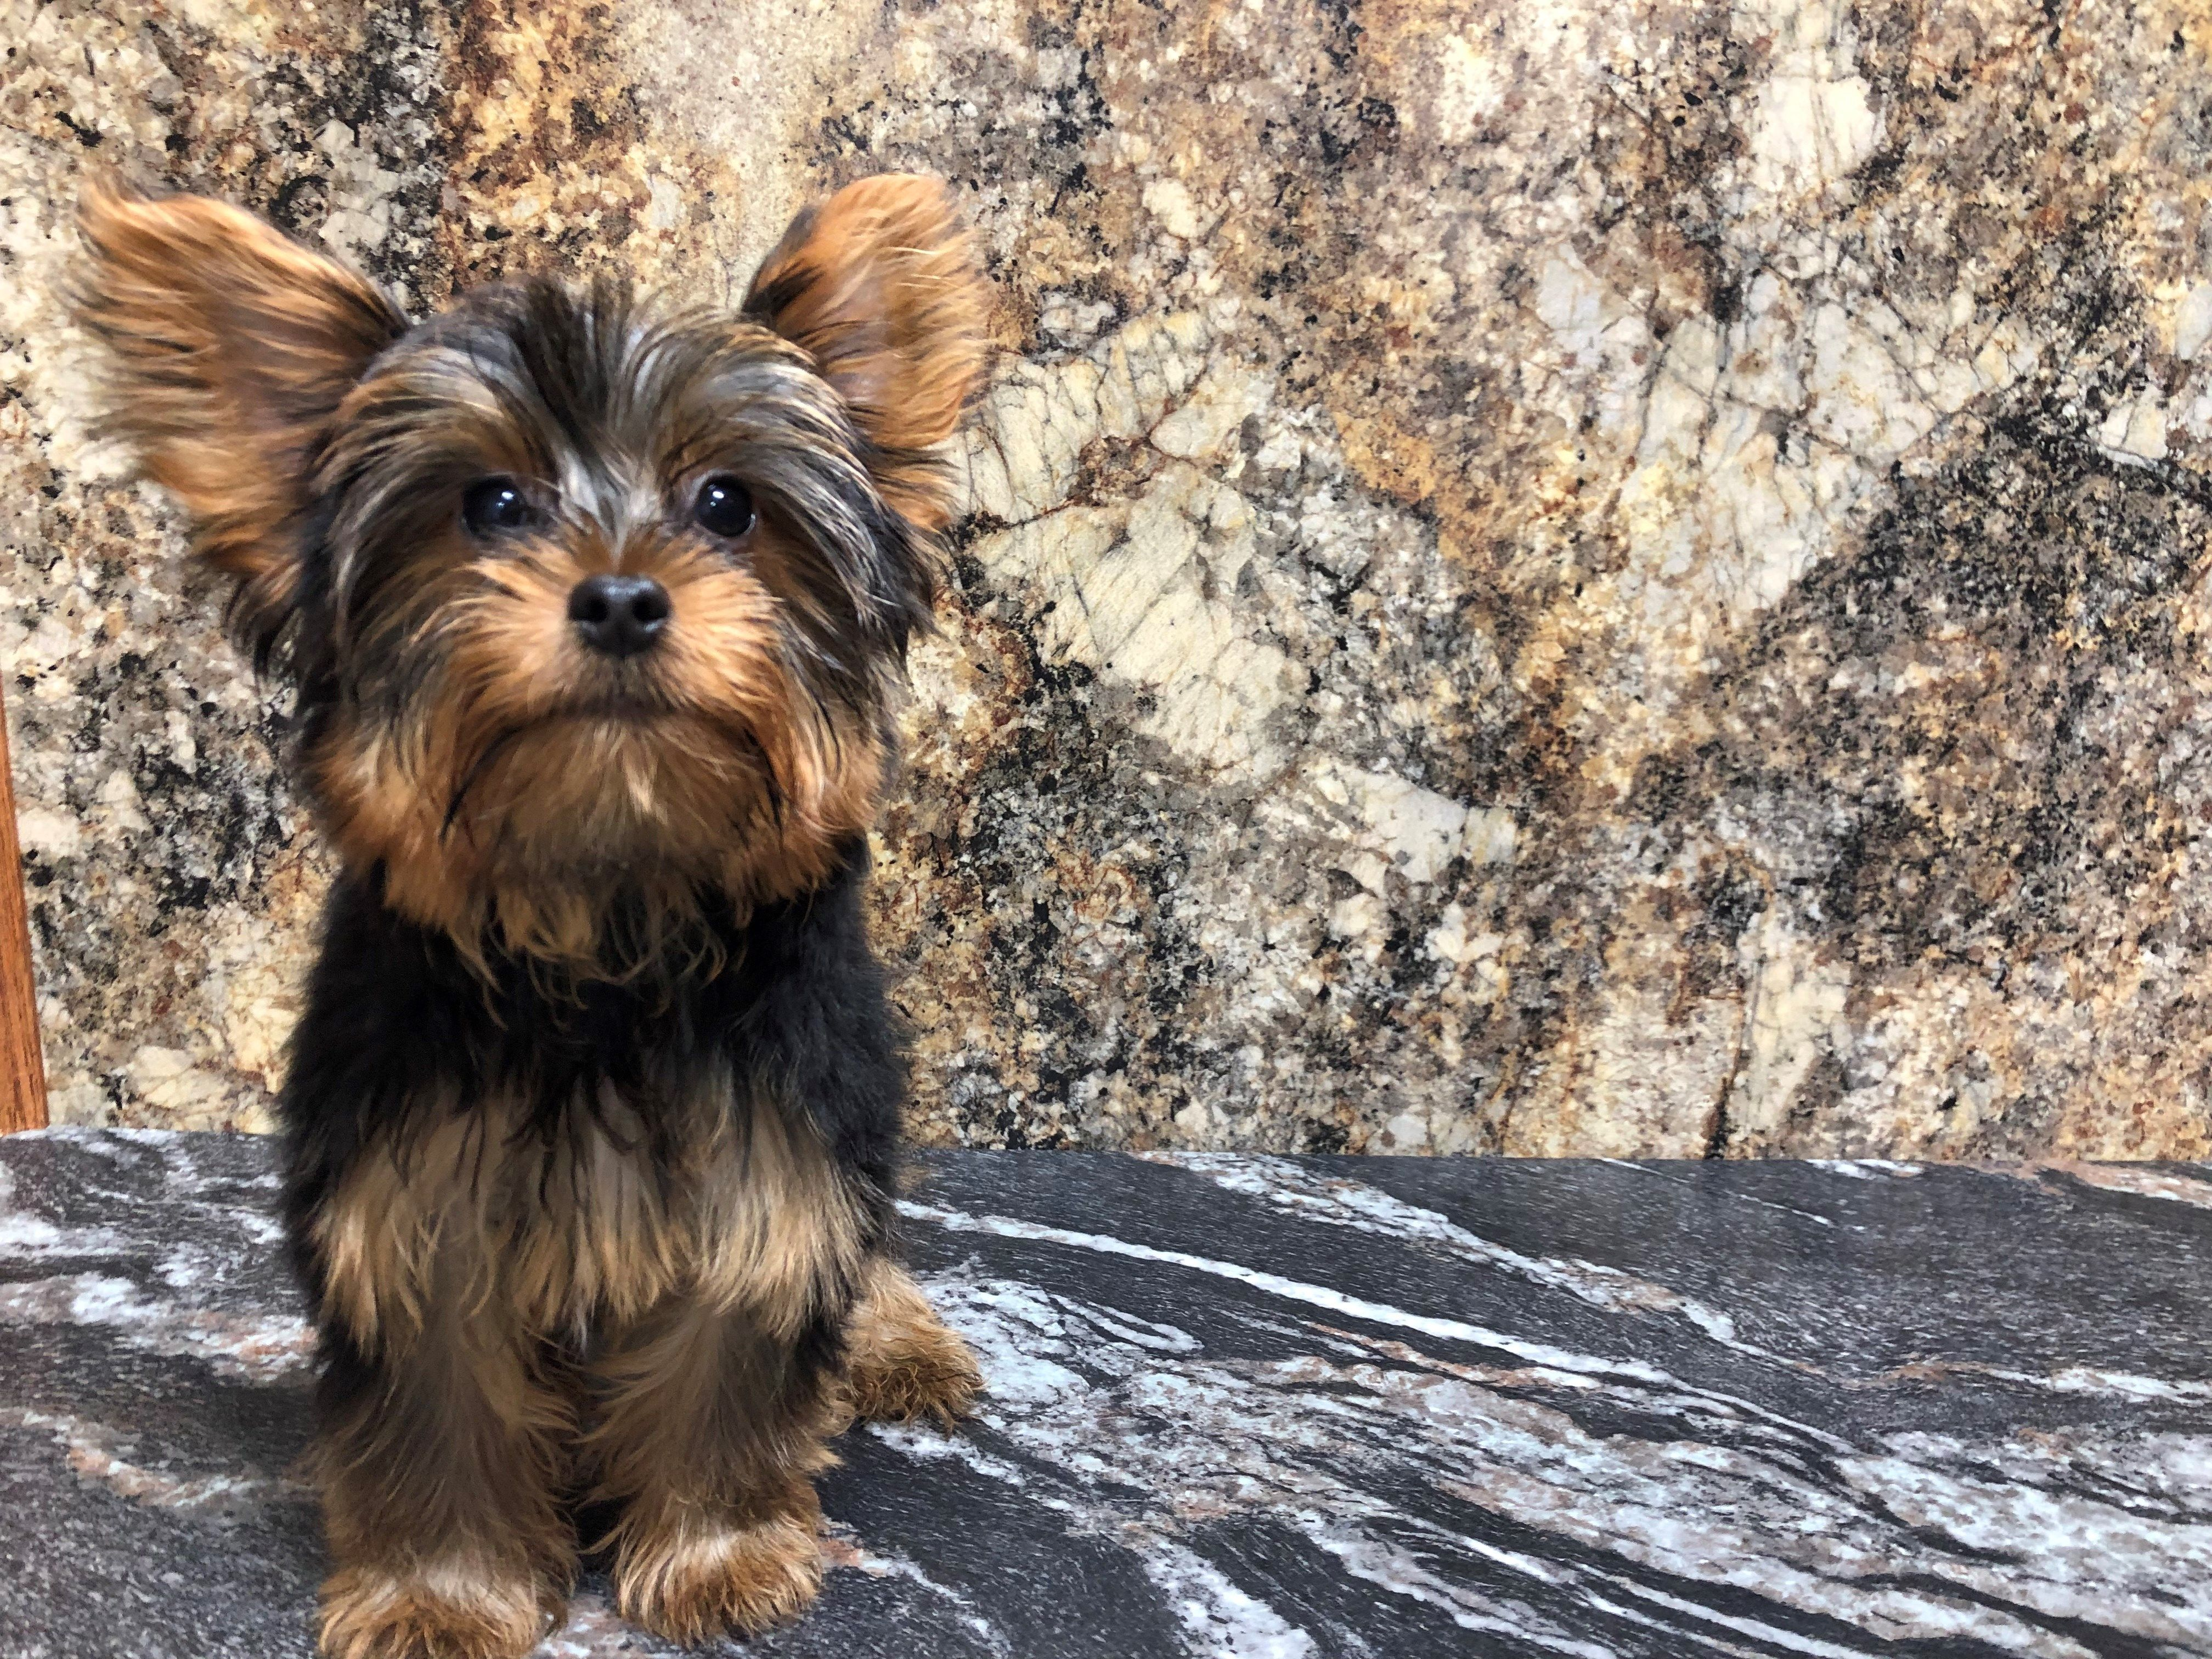 Petland Kansas City Has Yorkshire Terrier Puppies For Sale Check